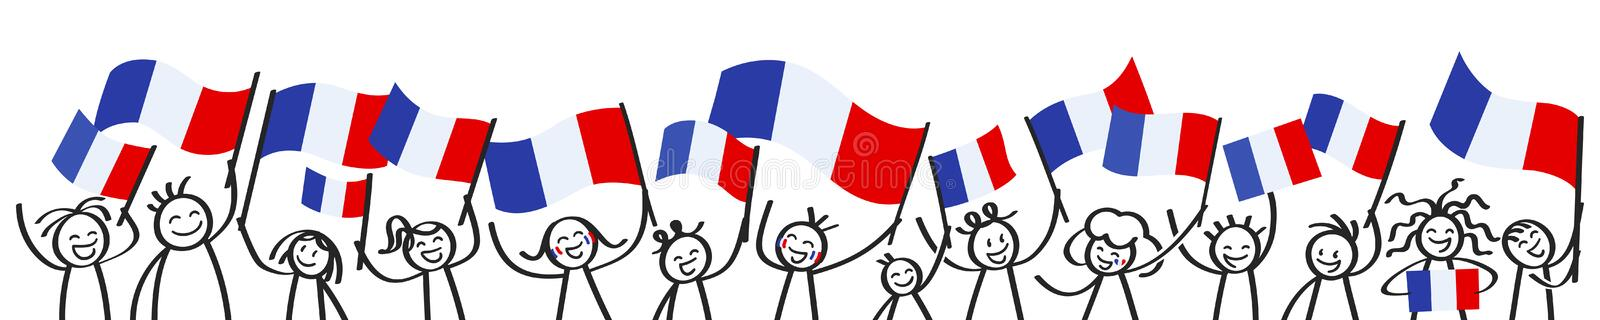 Cheering crowd of happy stick figures with French national flags, France supporters smiling and waving tricolor flags vector illustration